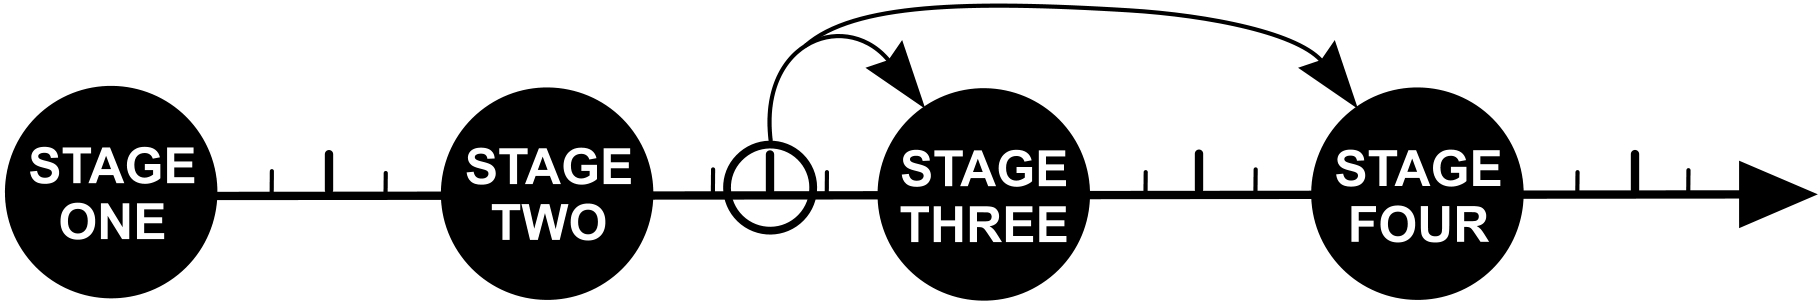 Spiritual Growth -- The Four Stages | Fountain of Life